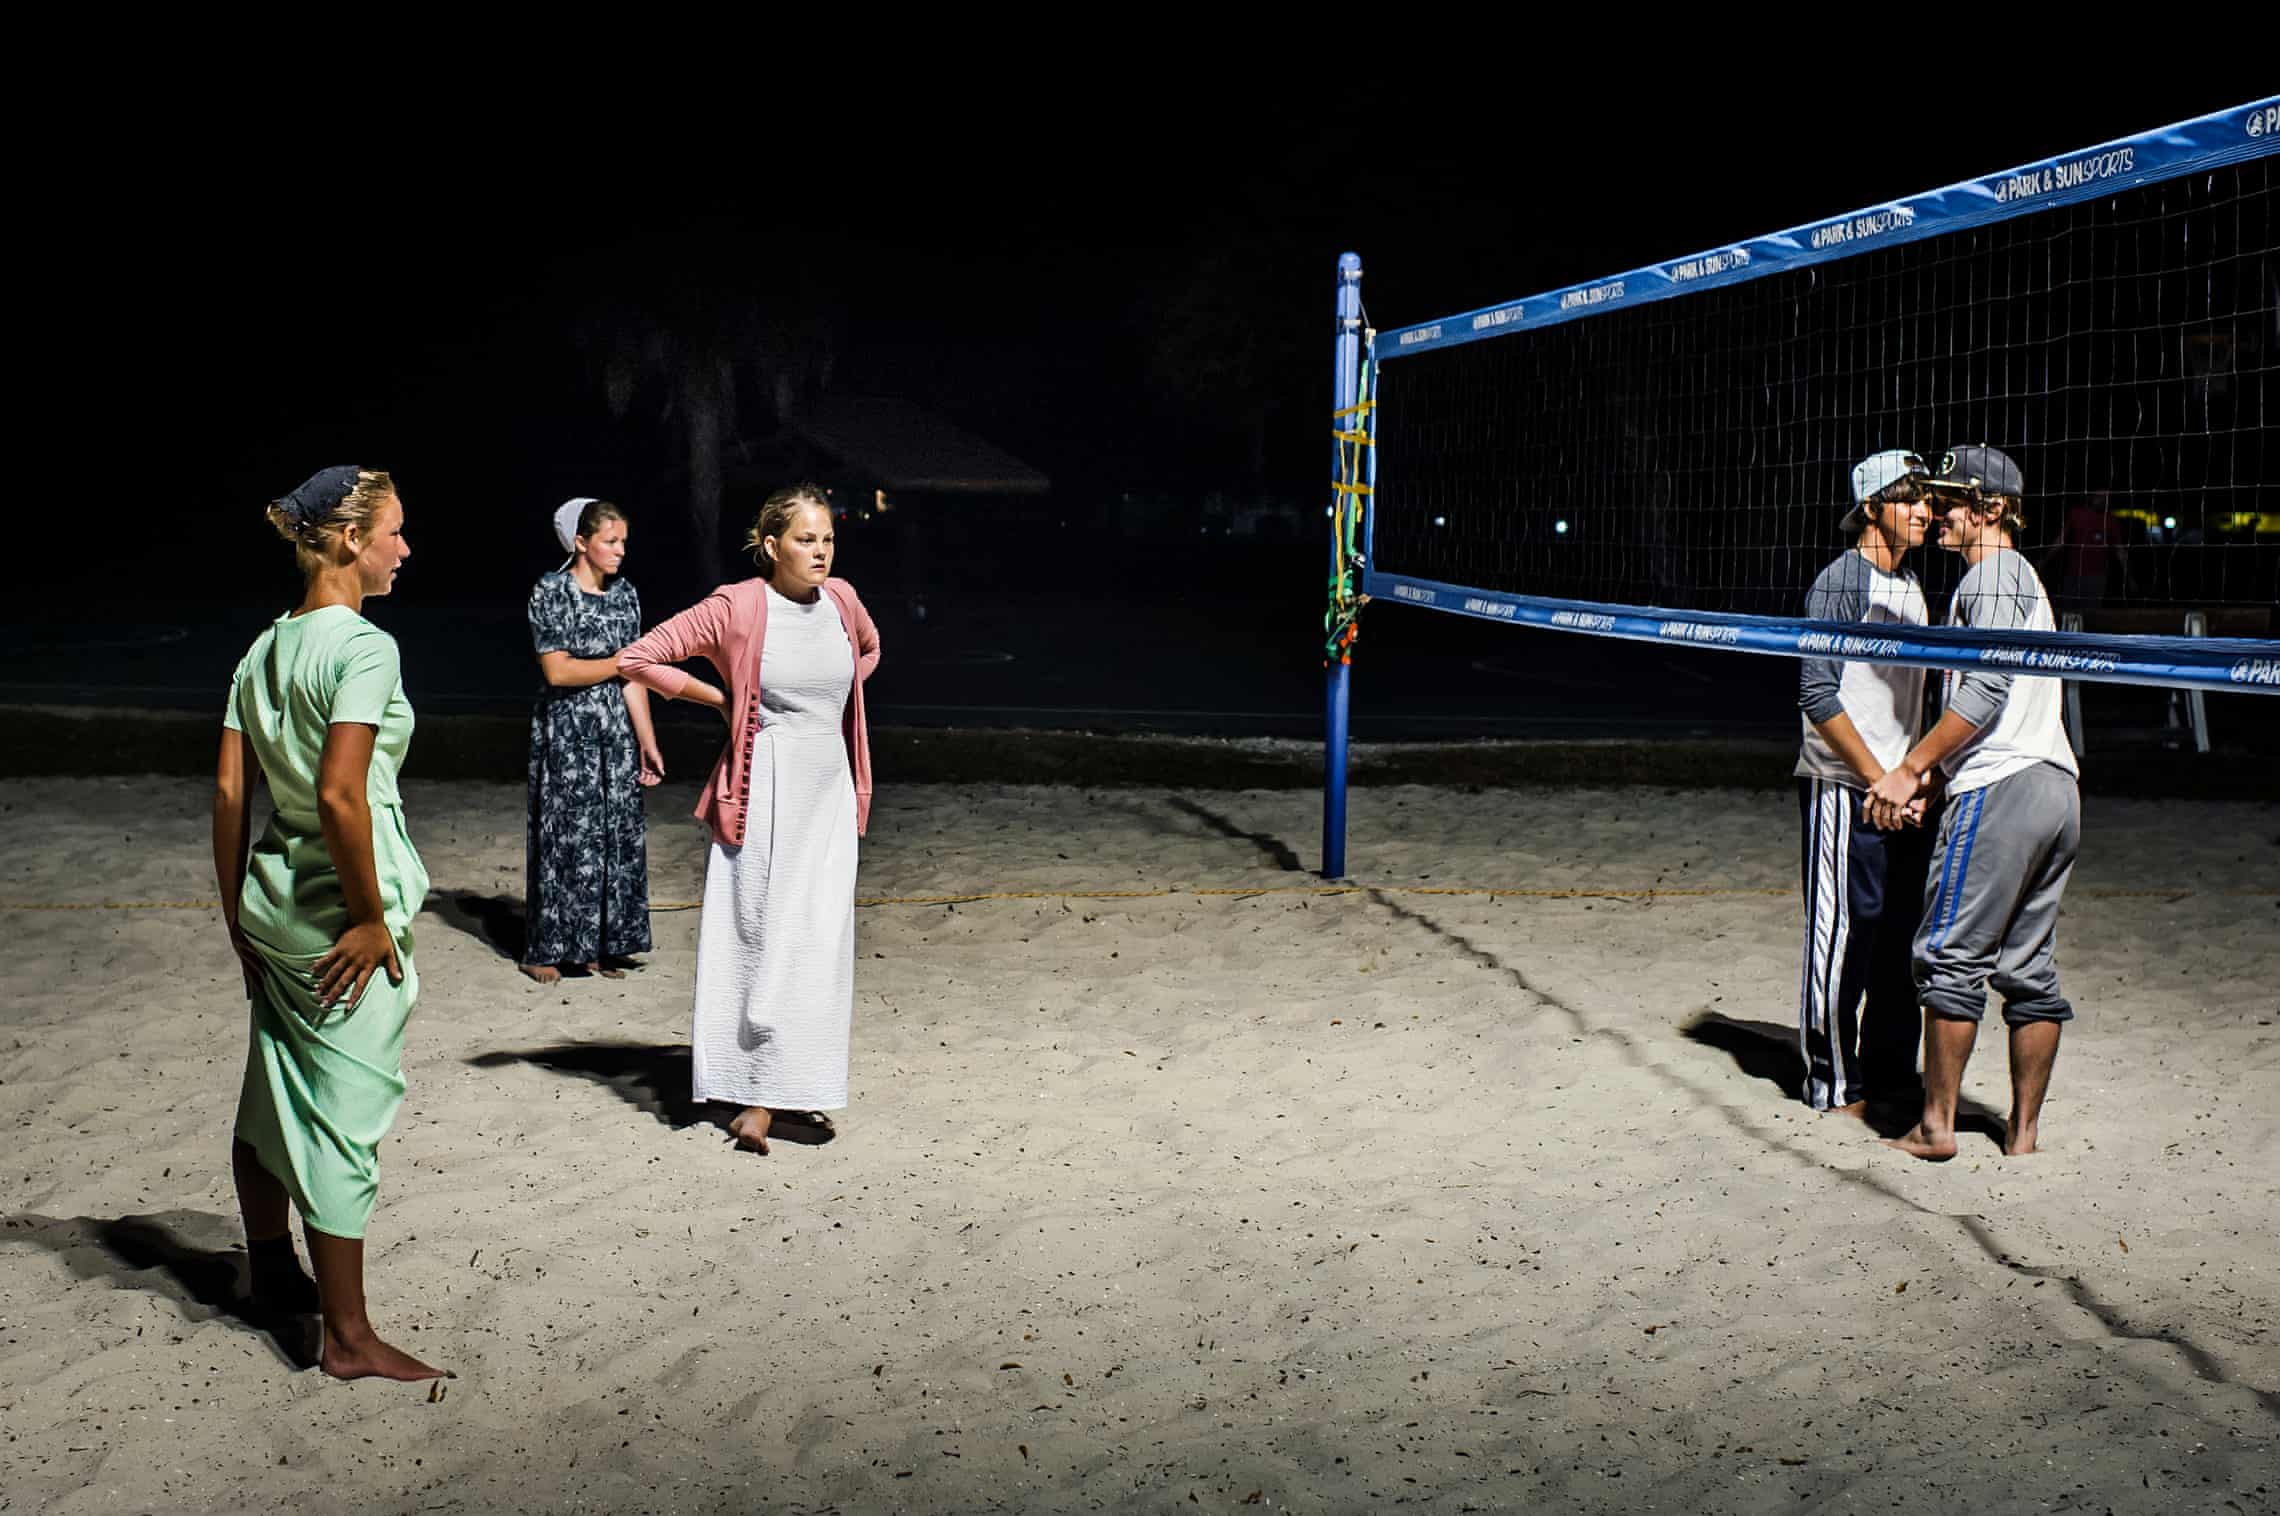 The nightly women's volleyball game is the community's main spectacle.